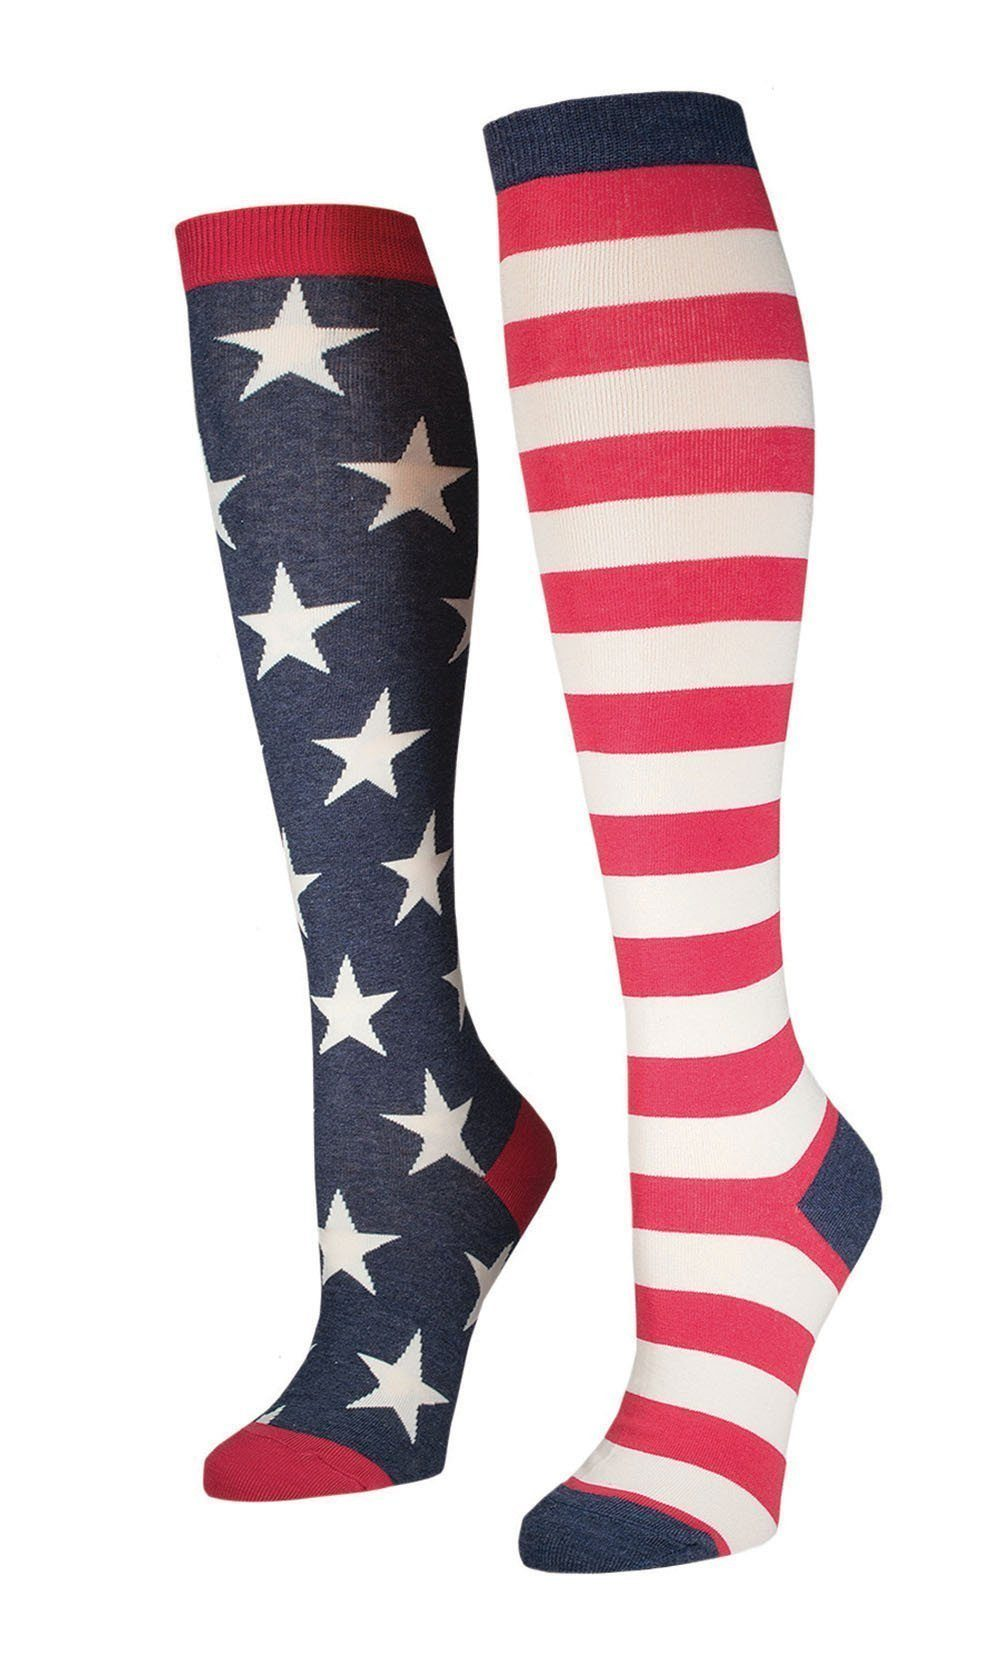 Socksmith - Flag Knee High Socks | Women's - Knock Your Socks Off